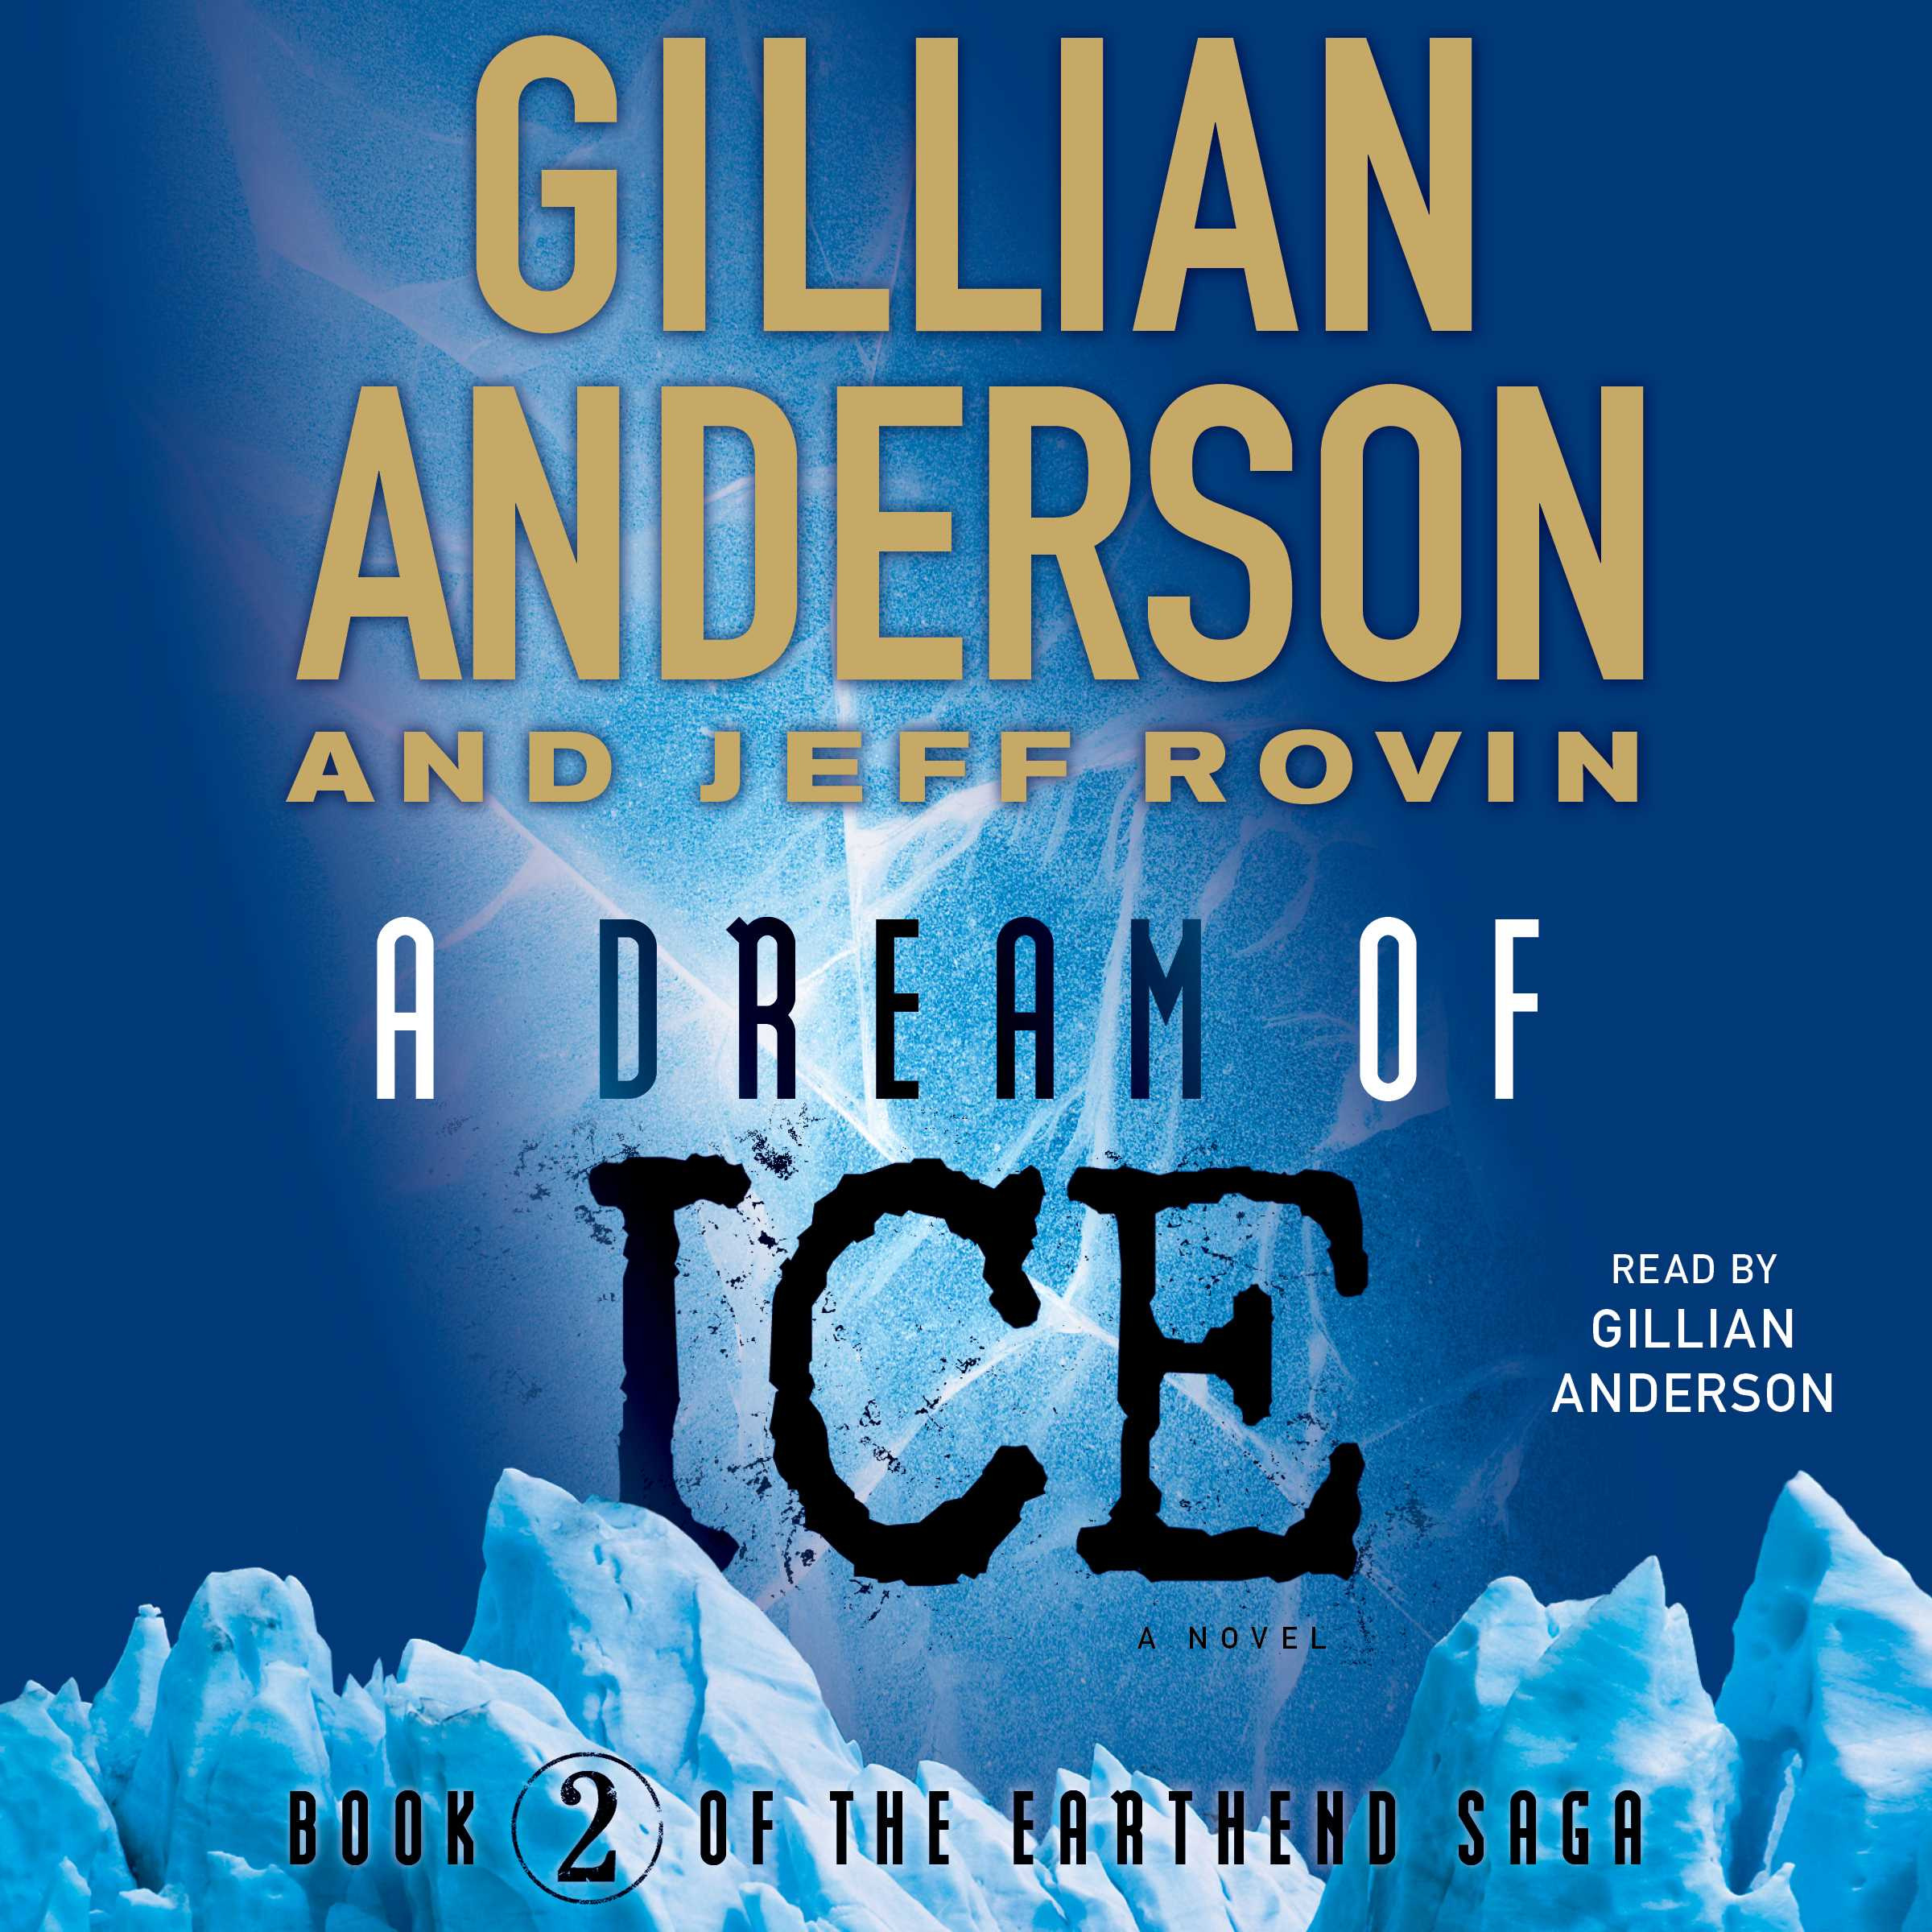 A dream of ice 9781442395633 hr